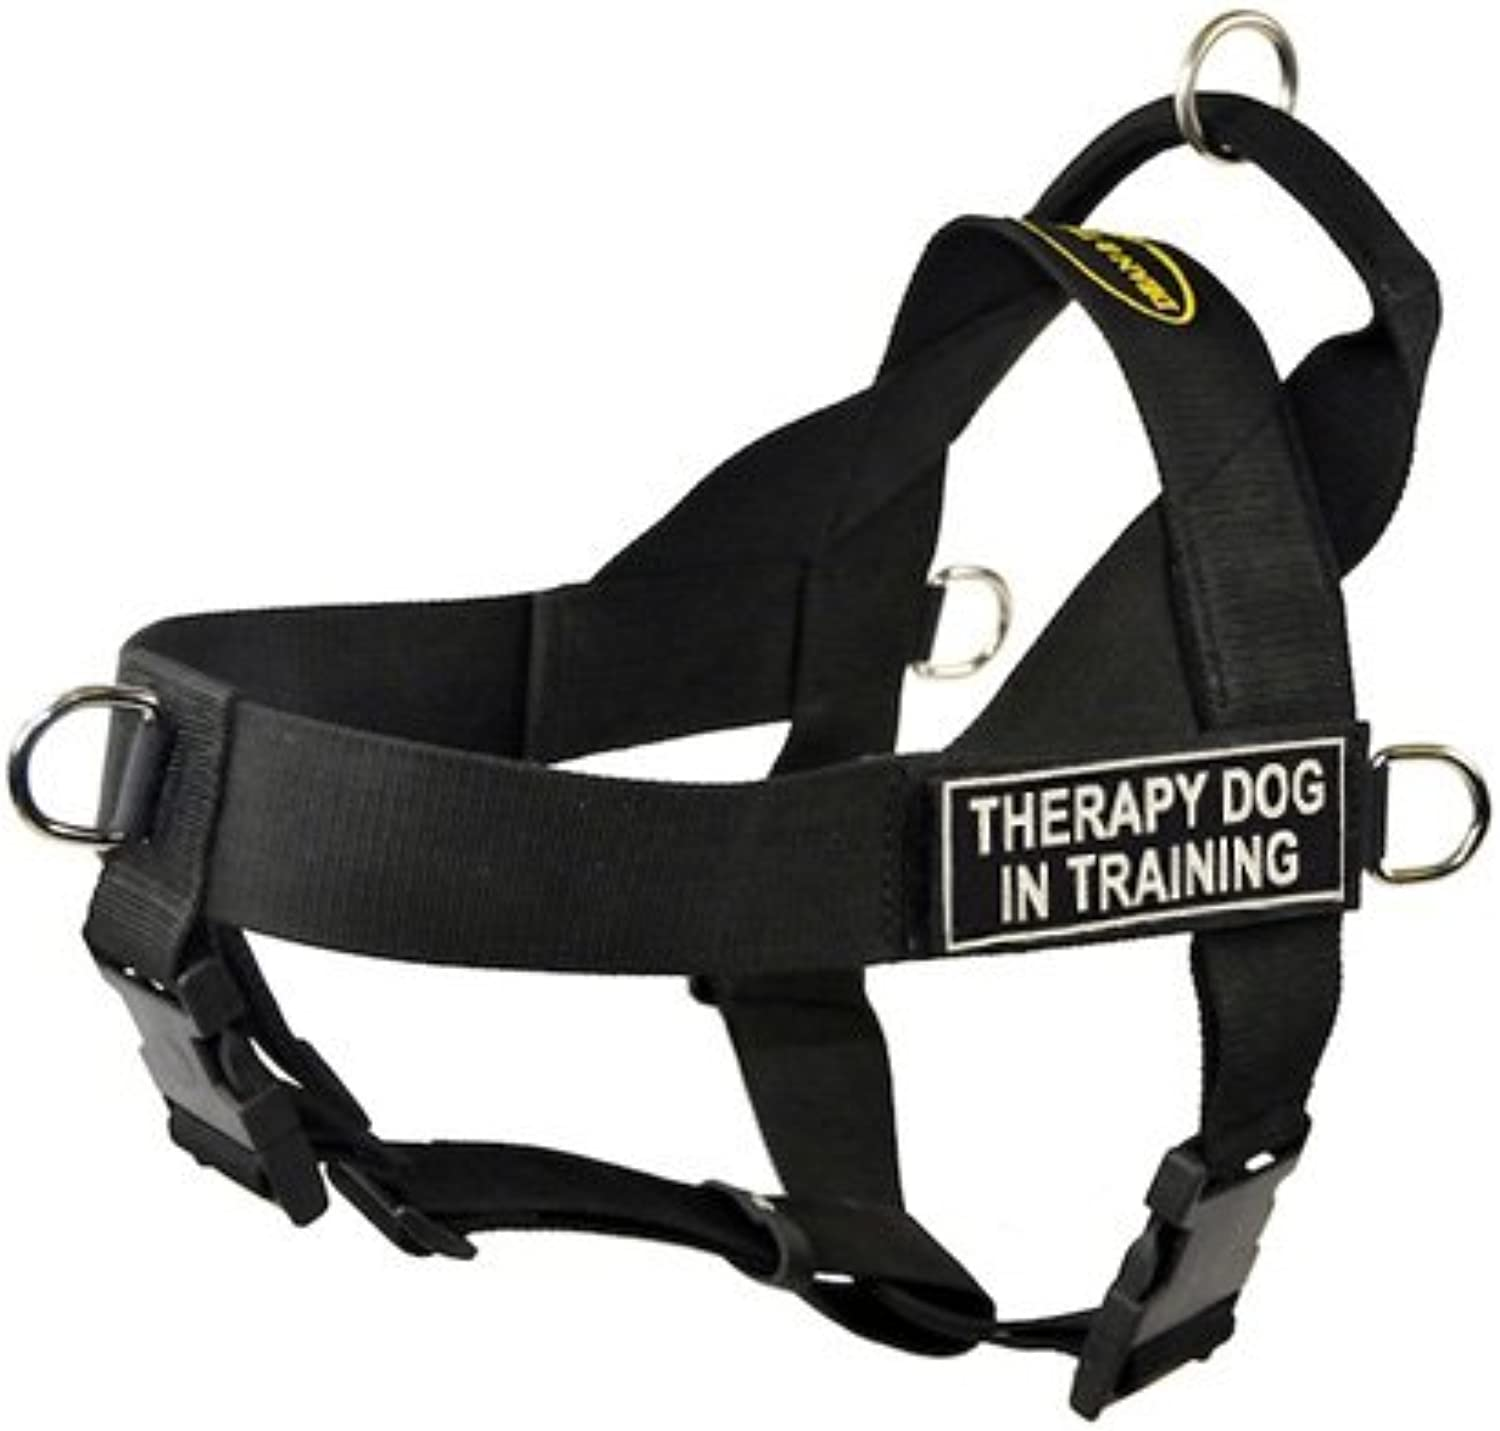 DT Universal No Pull Dog Harness, Therapy Dog In Training, Black, XLarge  Fits Girth Size  91cm to 119cm